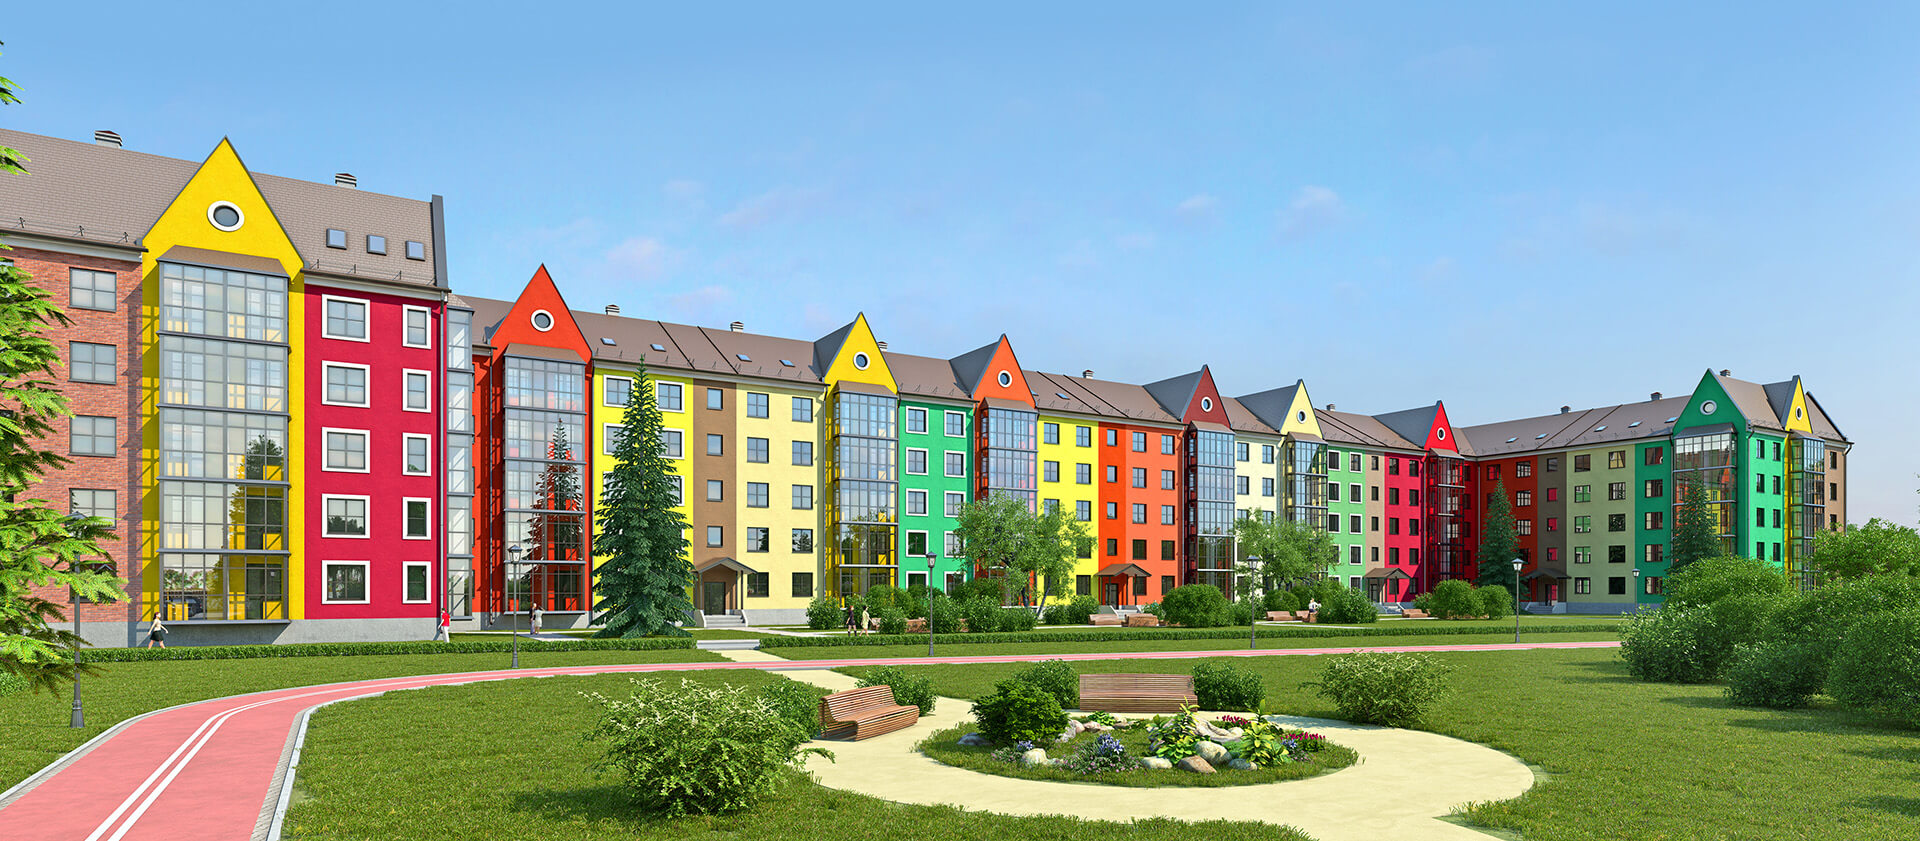 Visualization of an apartment house View of the Dutch style 2 3d